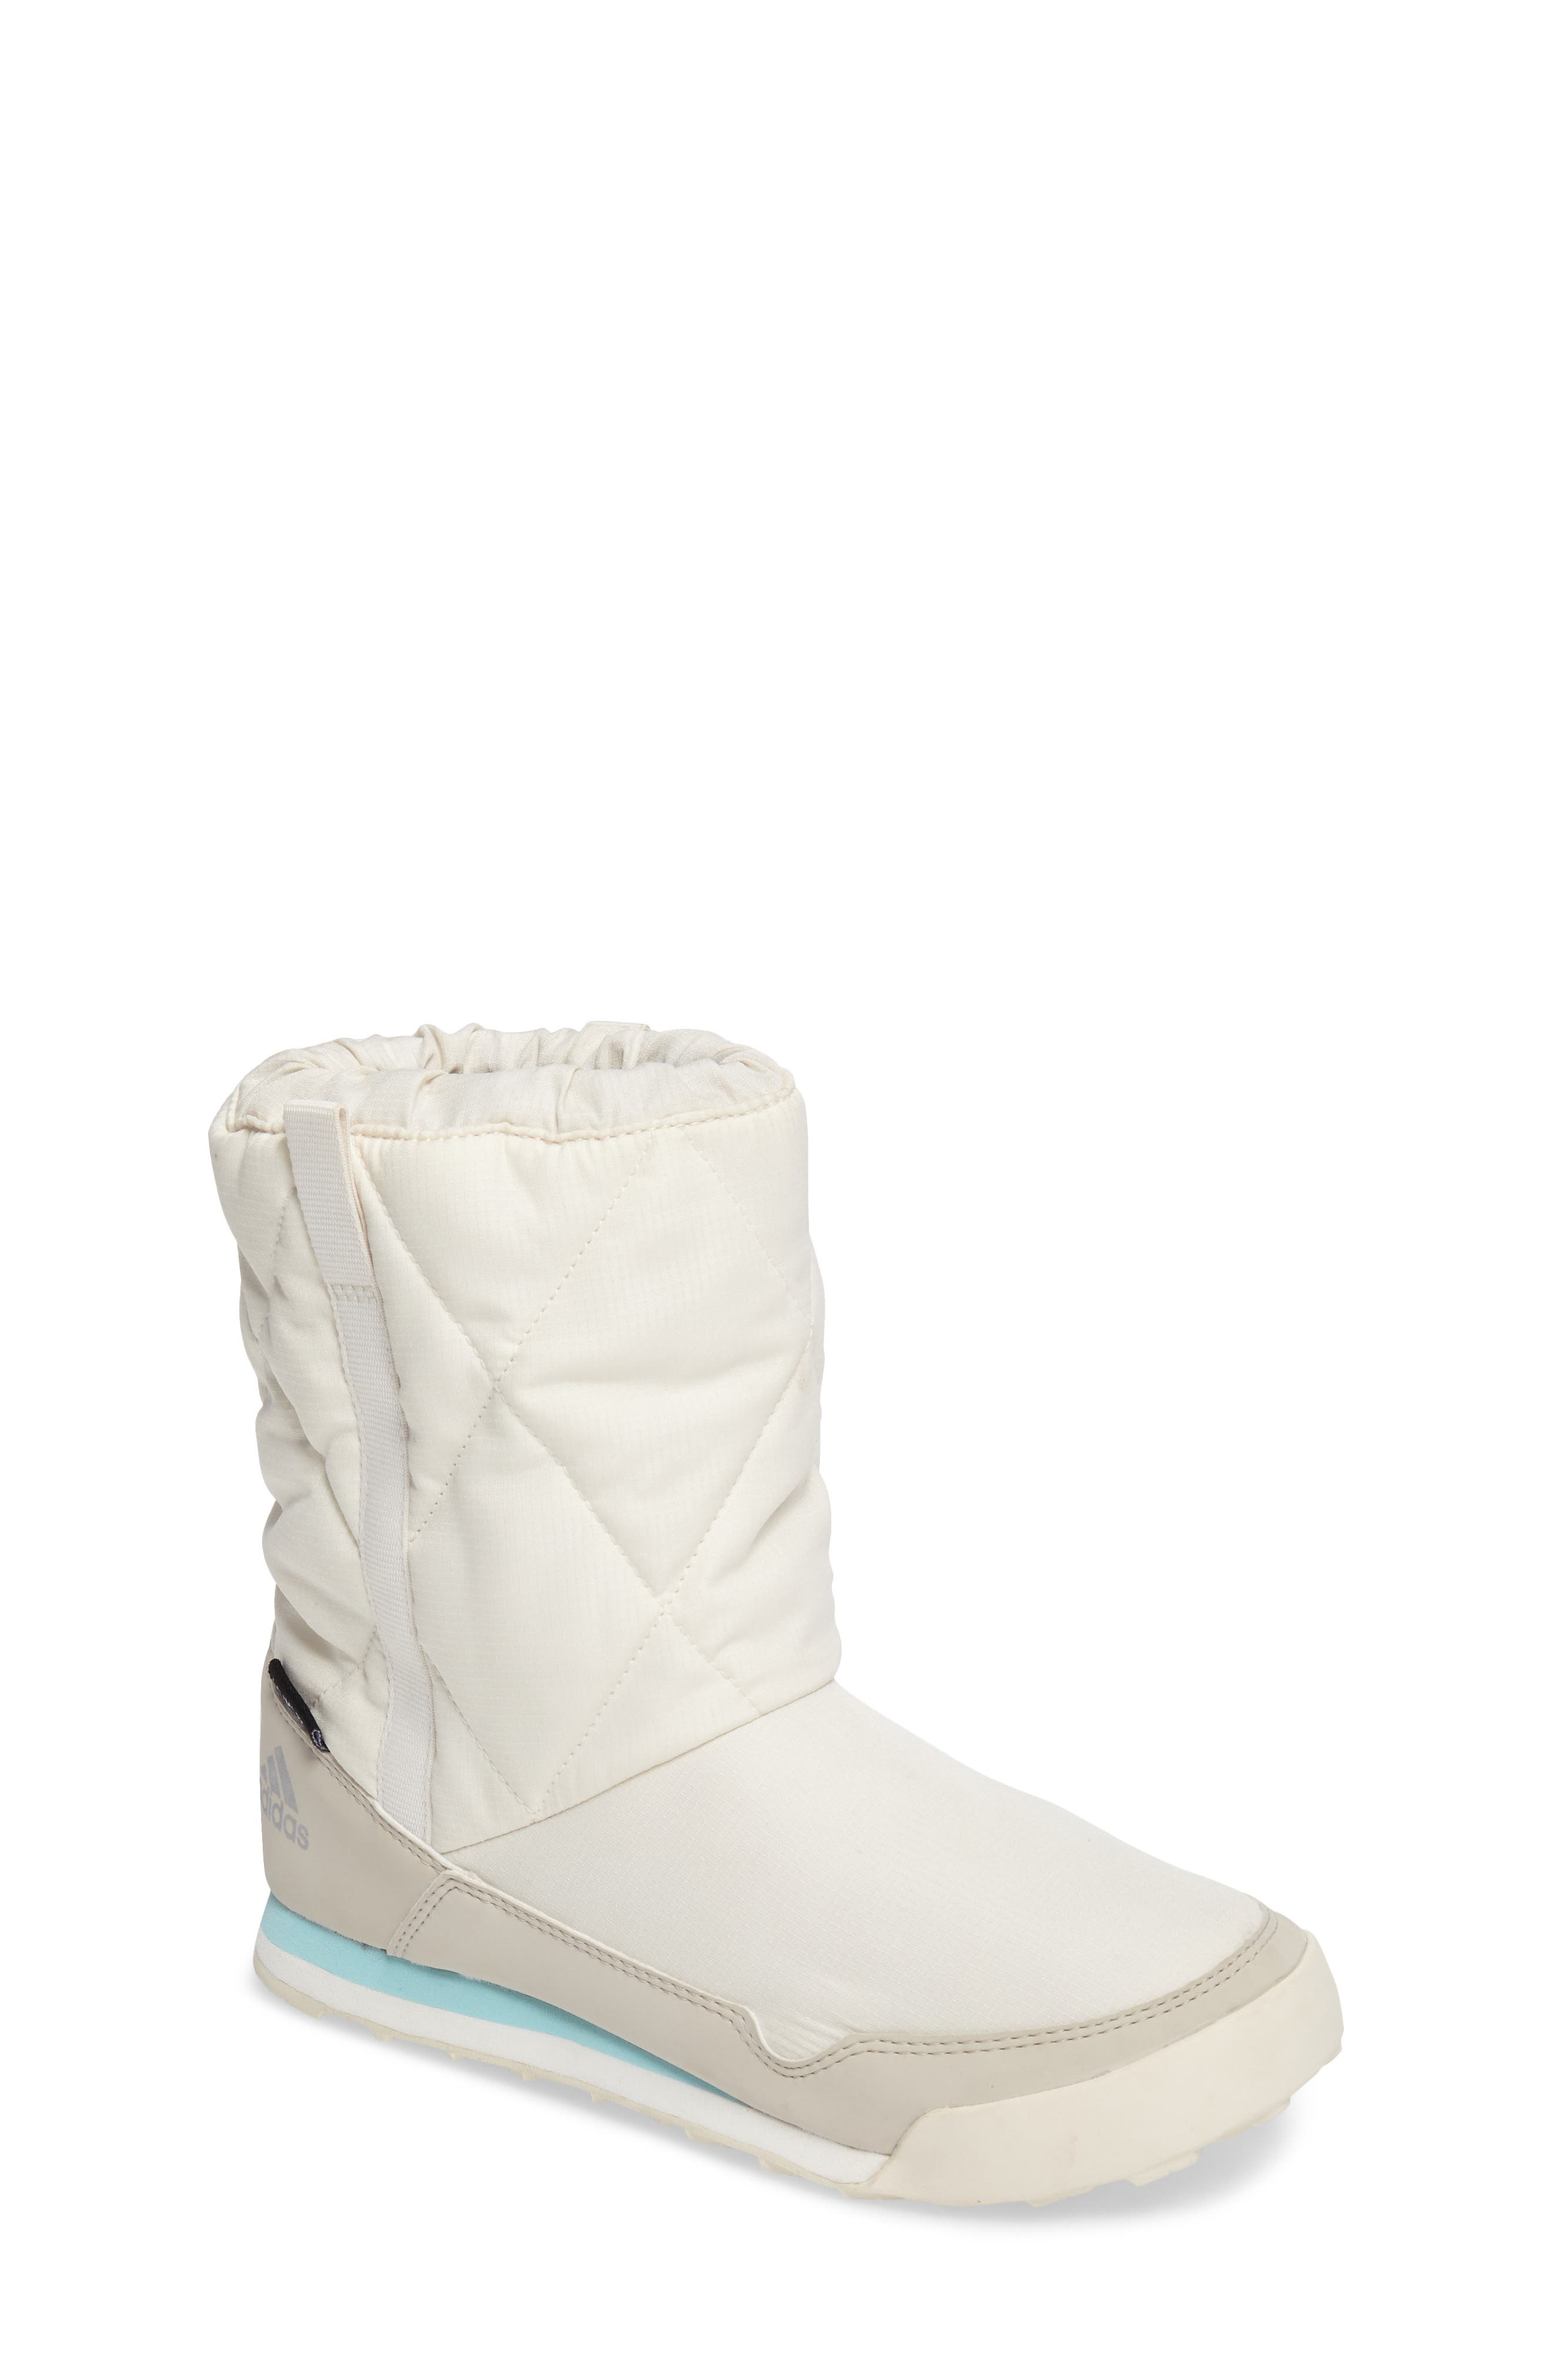 Main Image - adidas CW Snowpitch Insulated Waterproof Boot (Toddler, Little Kid & Big Kid)